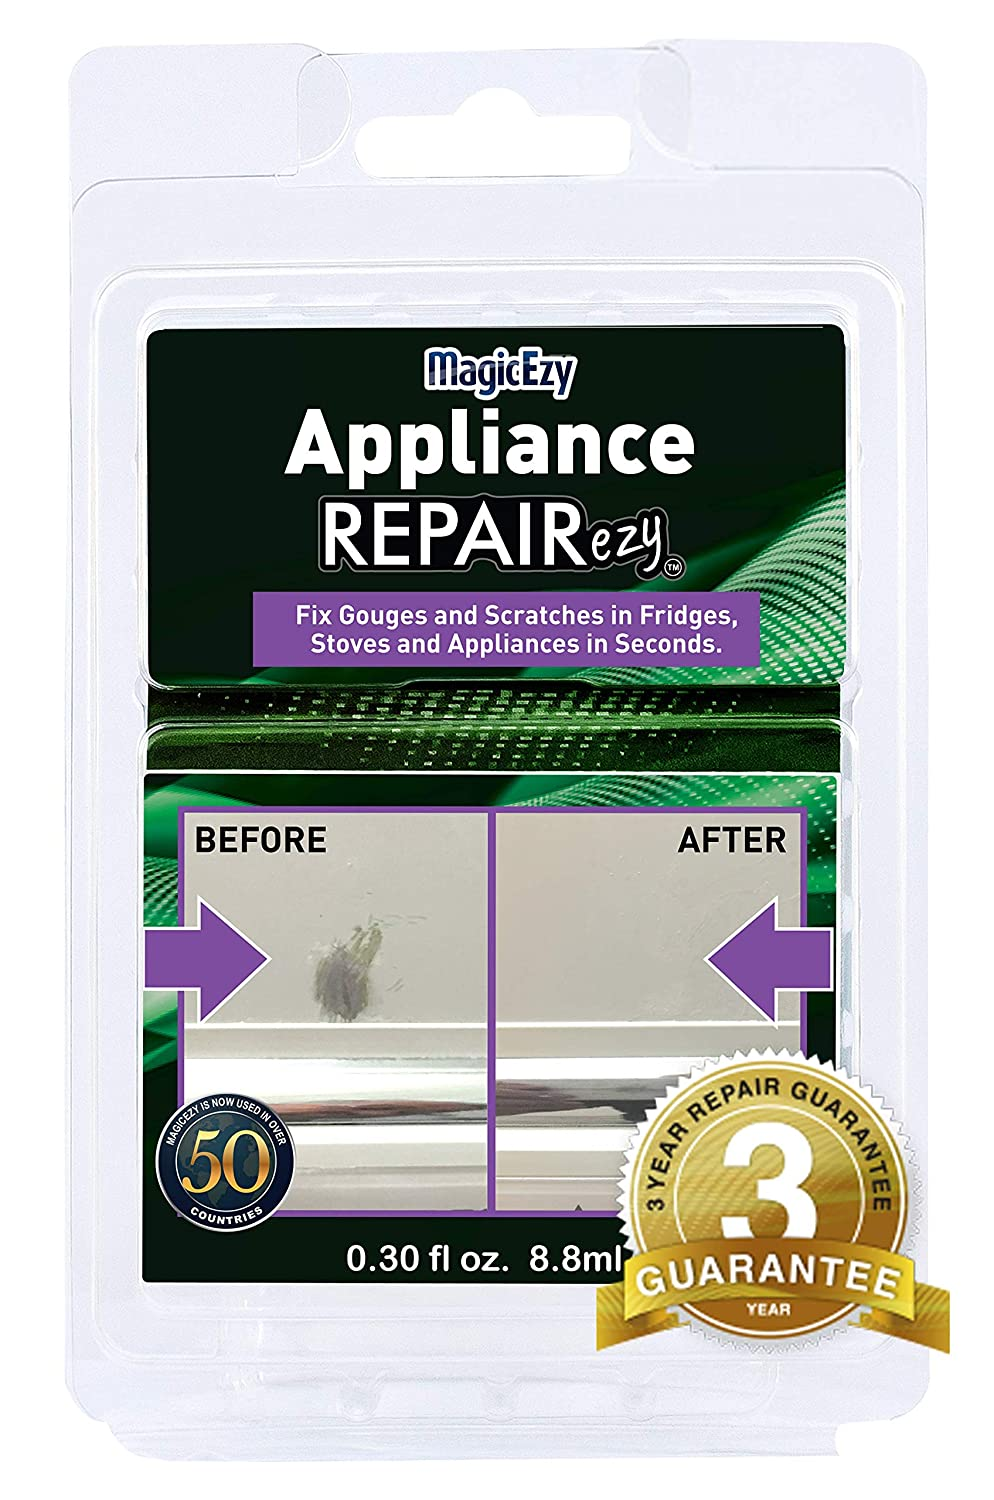 MagicEzy Appliance REPAIRezy (Black) - Appliance Touchup - Fills and Repairs Deep Chips and Scratches Fast - Virtually Undetectable